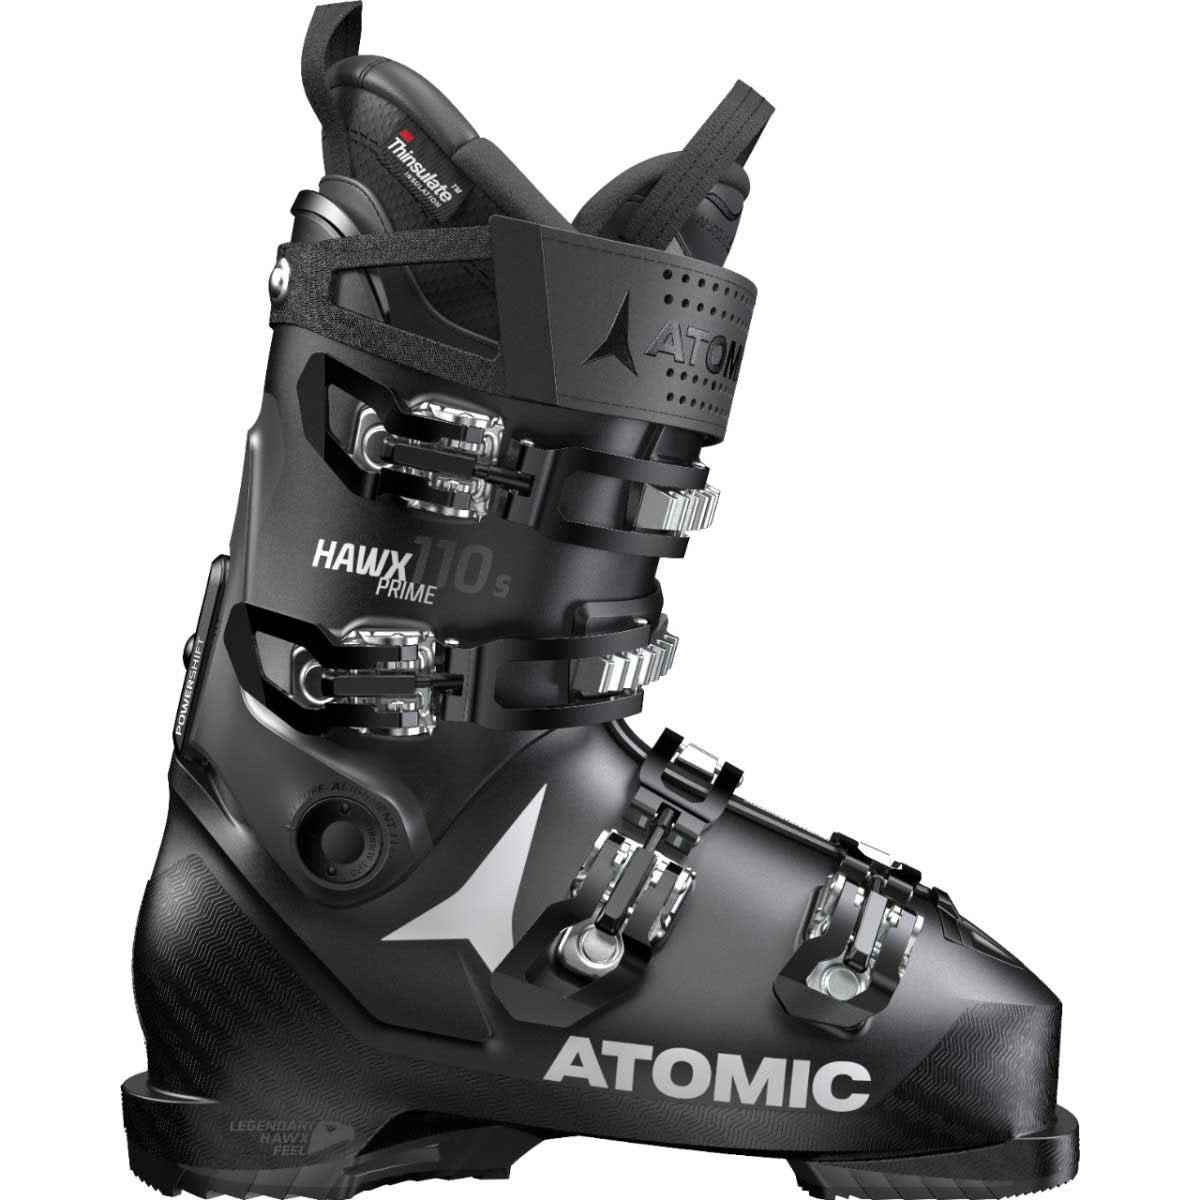 Atomic men's HAWX Prime 110 S ski boot in black anthracite